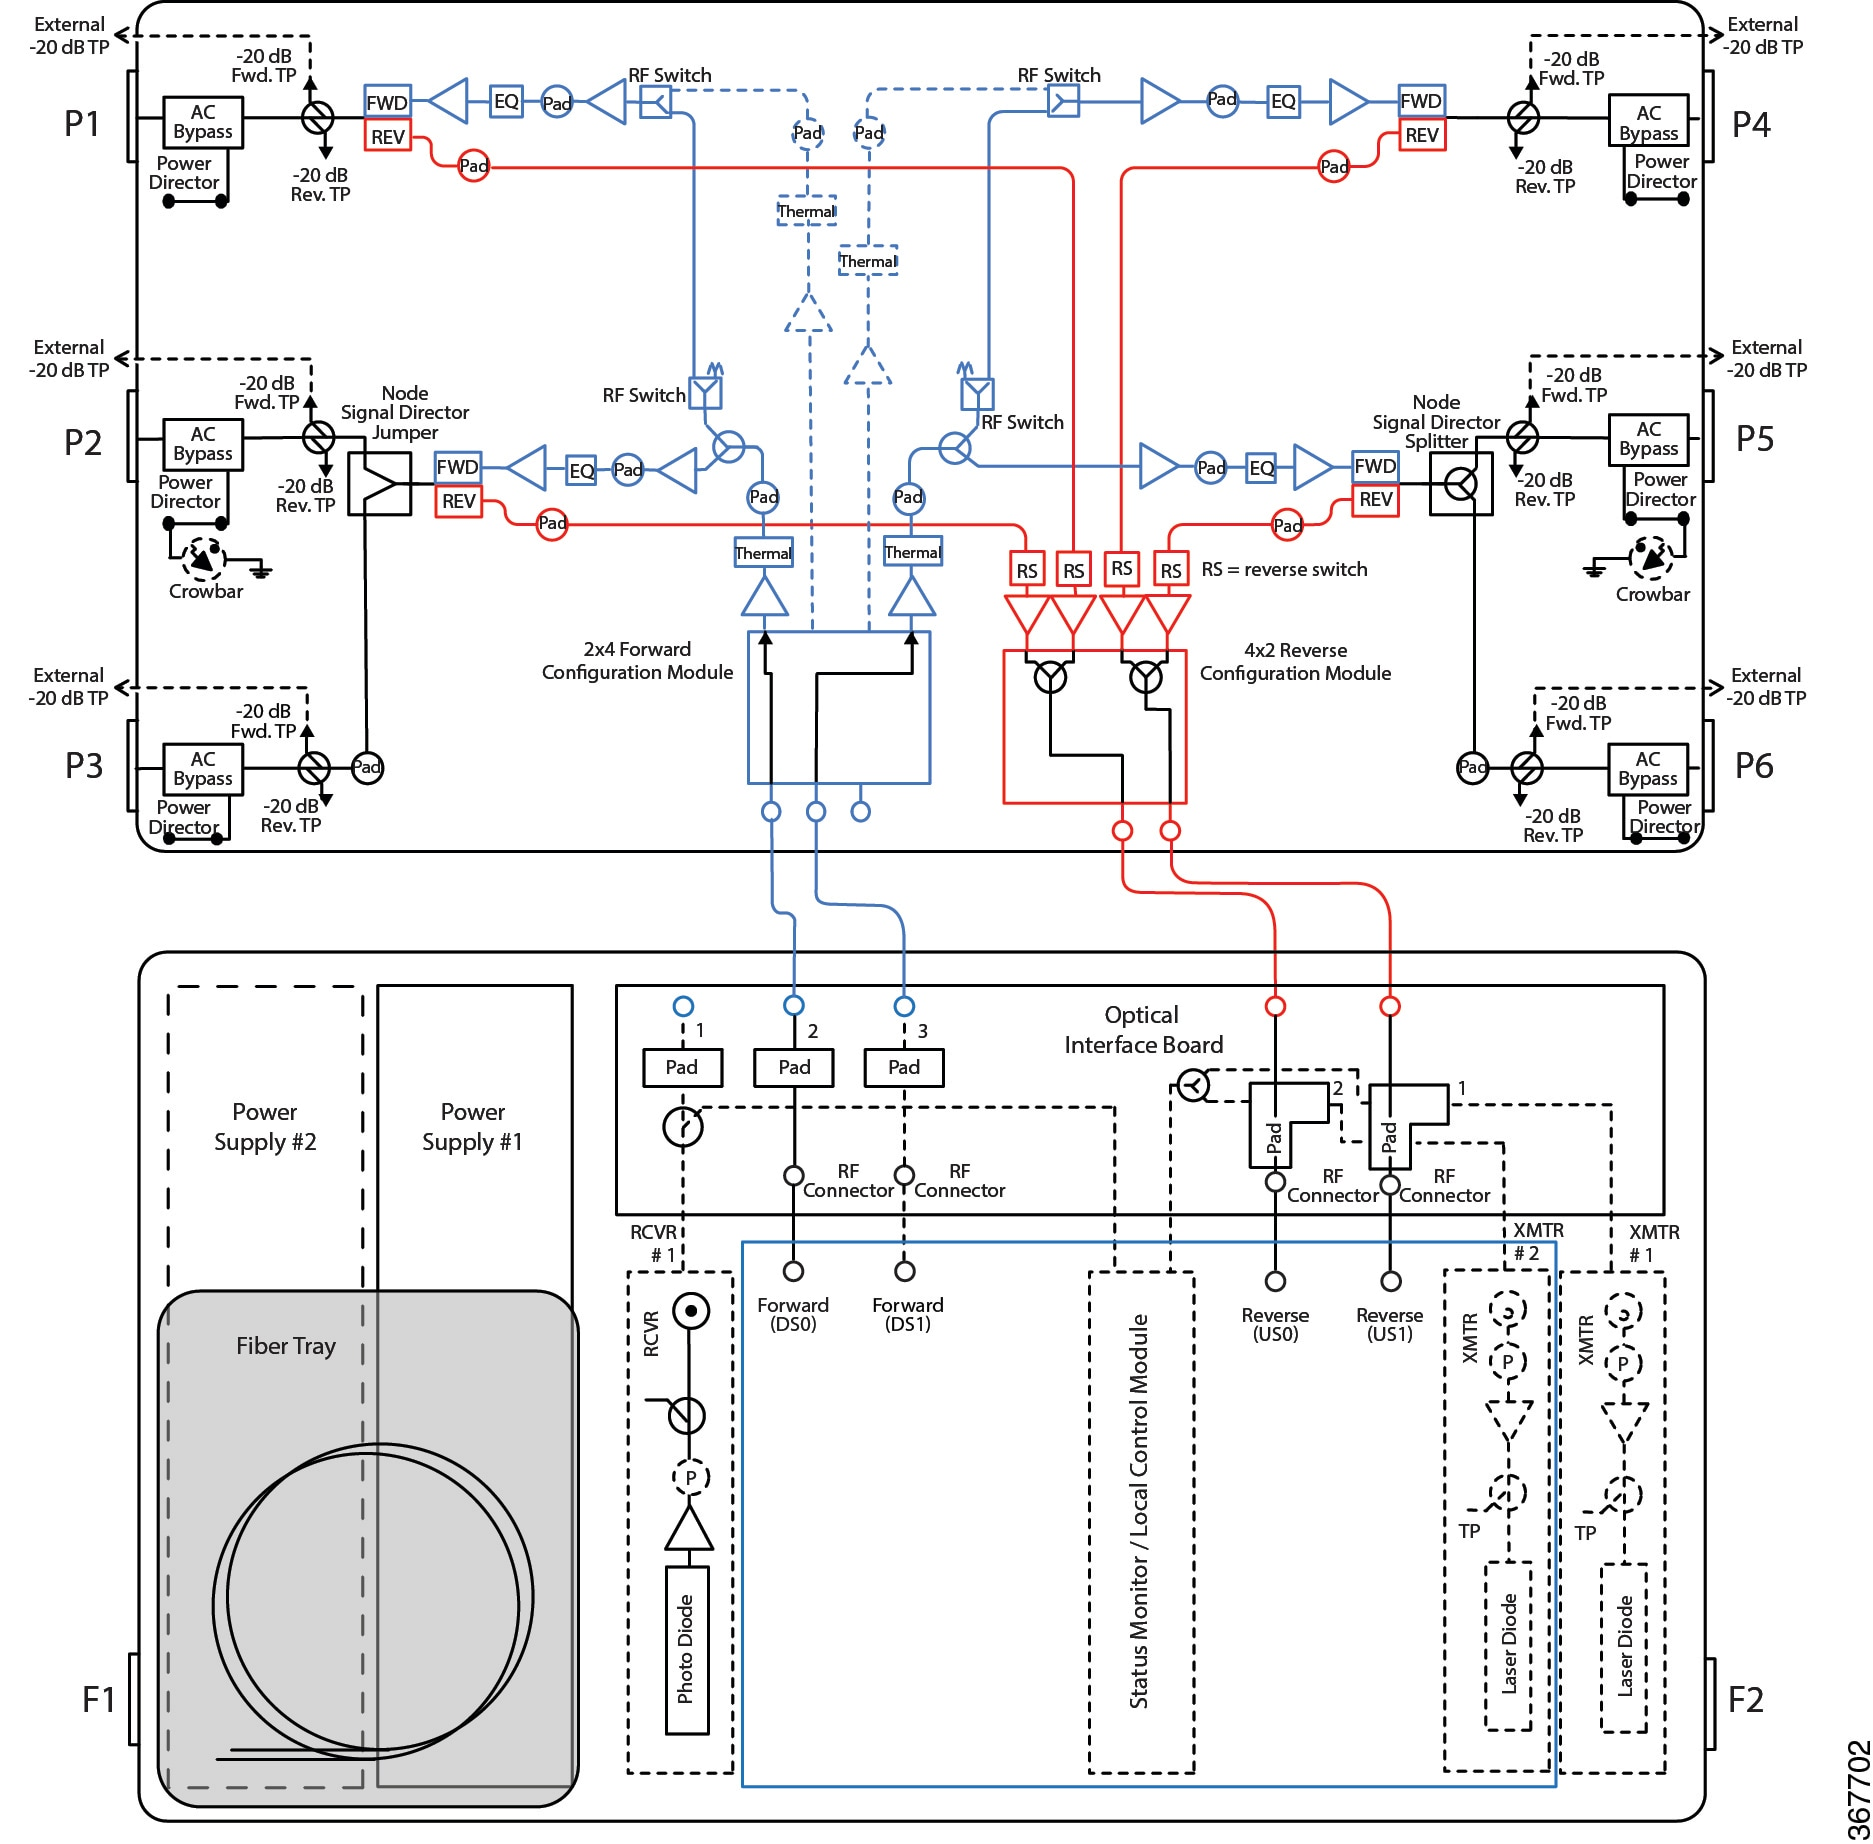 Cisco Gs7000 Super High Output Intelligent Node Software 5 Band Equalizer Circuit Diagram The Following Diagrams Show Signal Flow For With Rpd 2x4 Forward Configuration Module And 4x2 Reverse